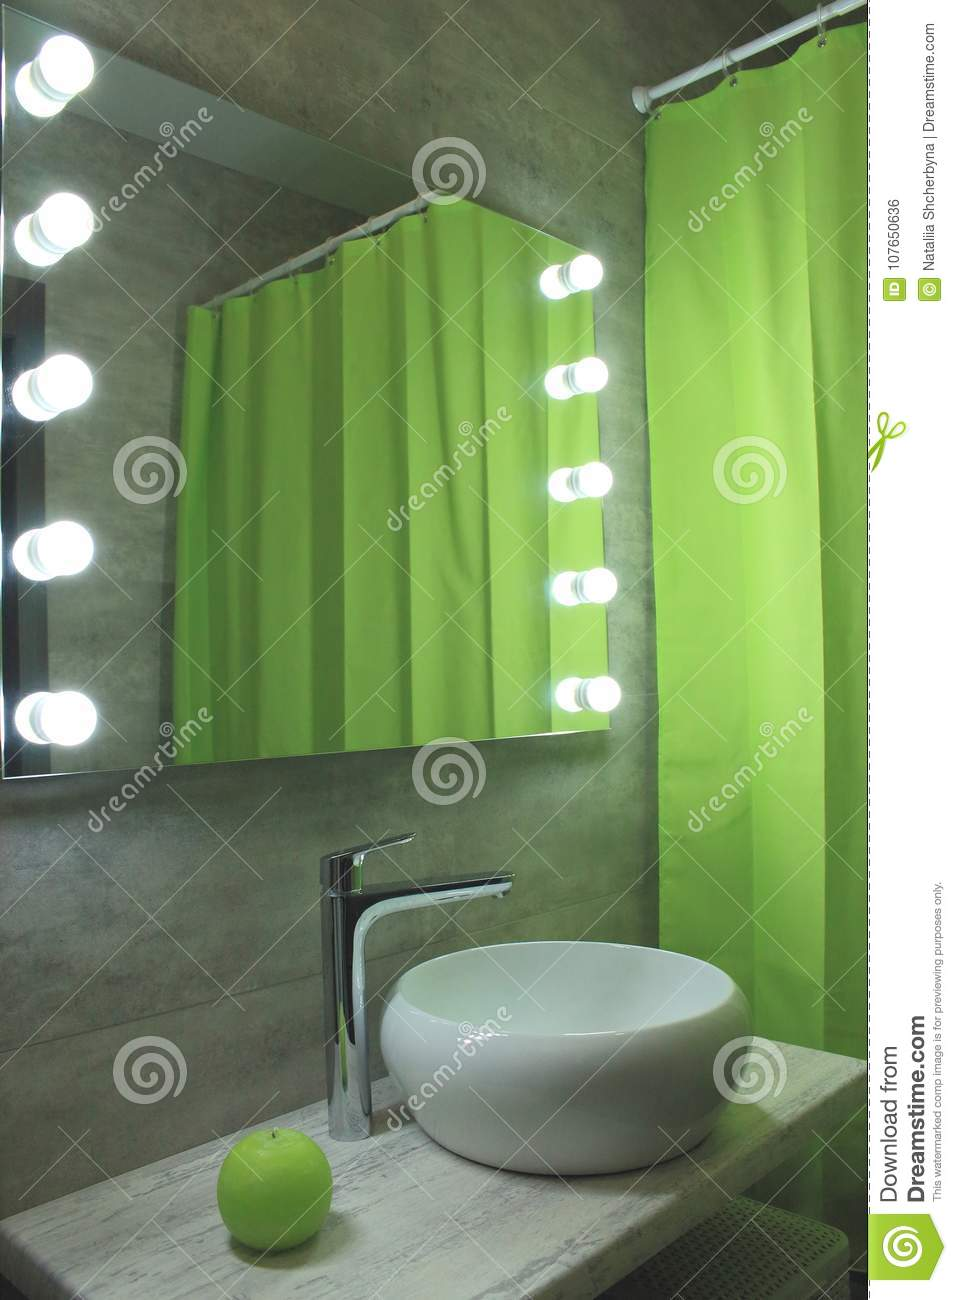 New Ecological Bathroom Design. Light Grey And Green Restroom With ...